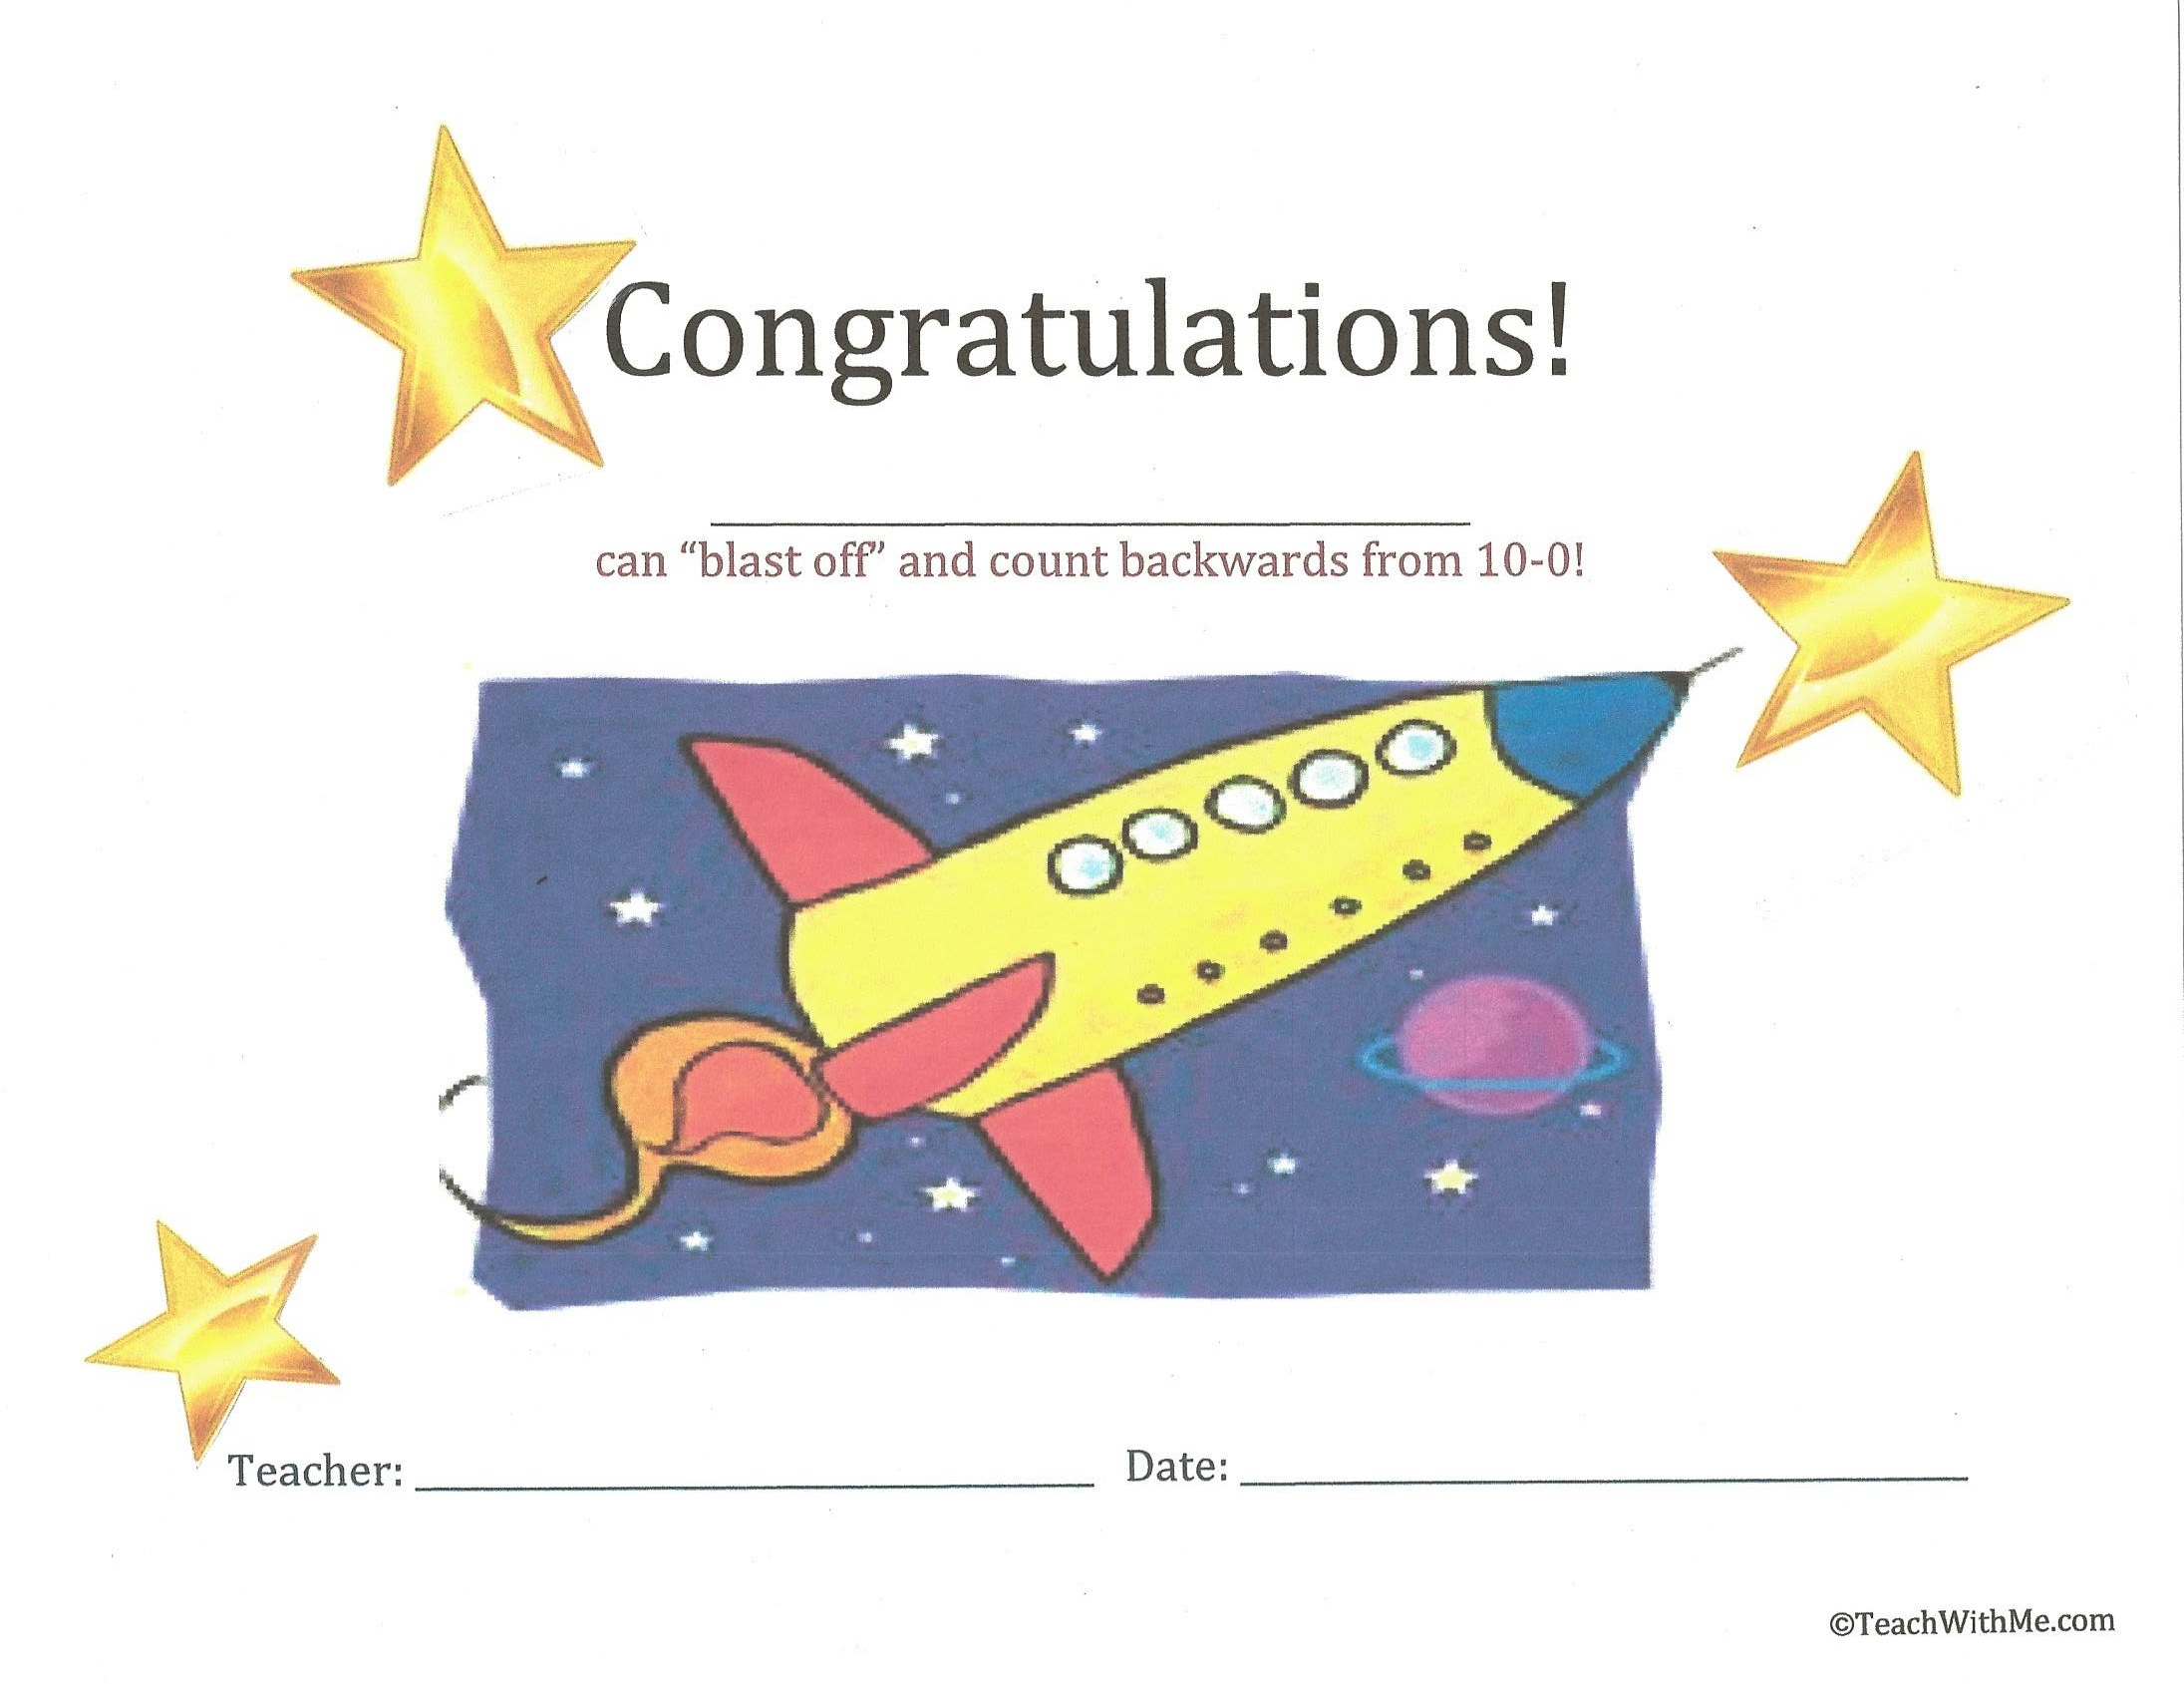 blast off certificate, counting backwards certificate, counting backwards ideas, counting backwards lessons, counting backwards booklet, counting backwards from 20 to 0, counting backwards from 10 to 0, blasting off ideas,